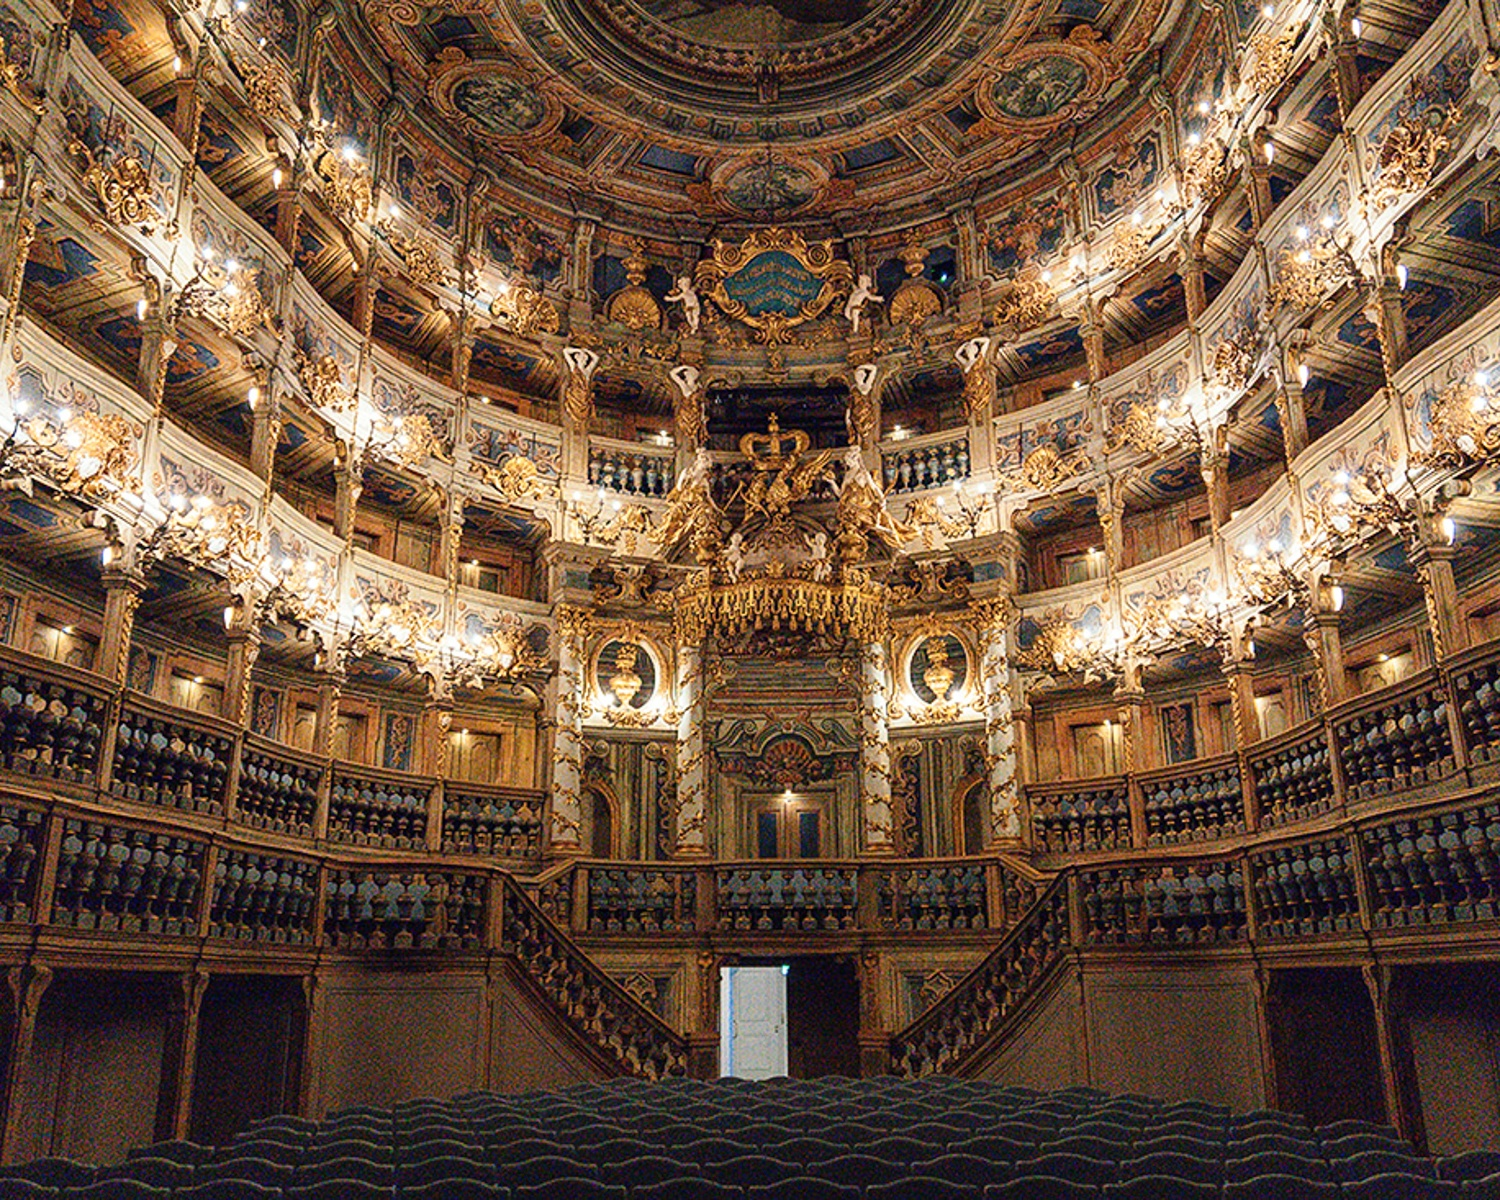 Margravial Opera House Bayreuth Photo: Annees de Pelerinage